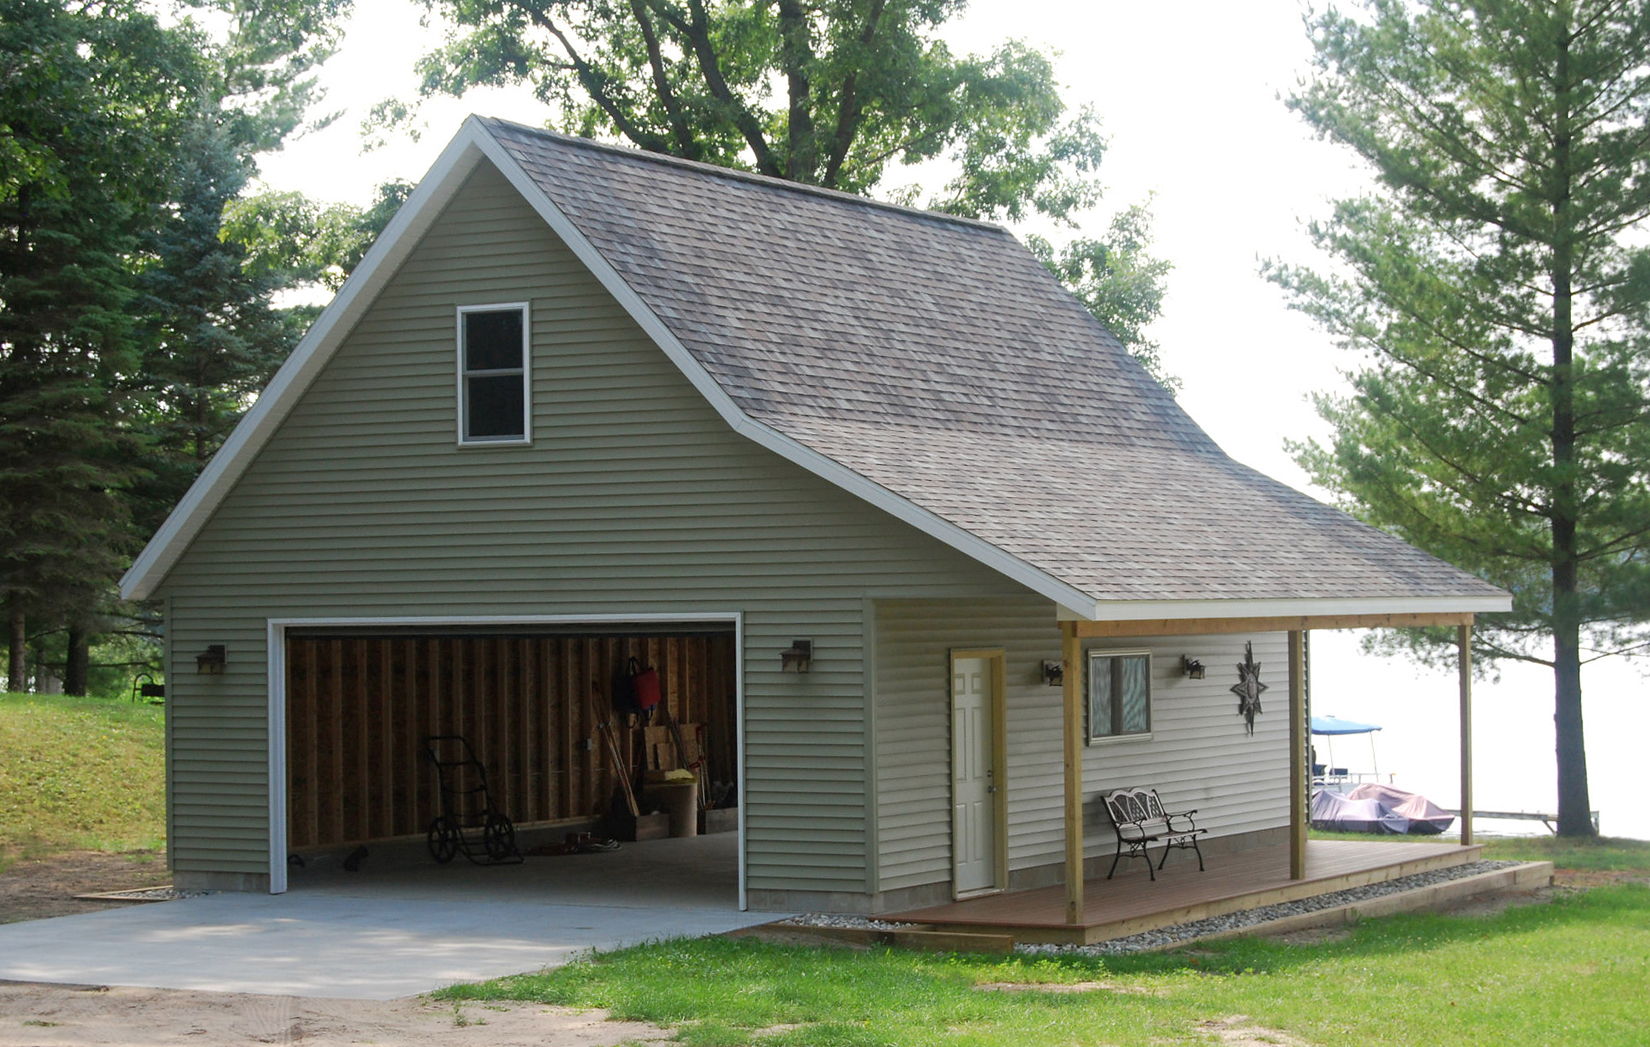 Pole barn house pictures that show classic construction for Large garage plans